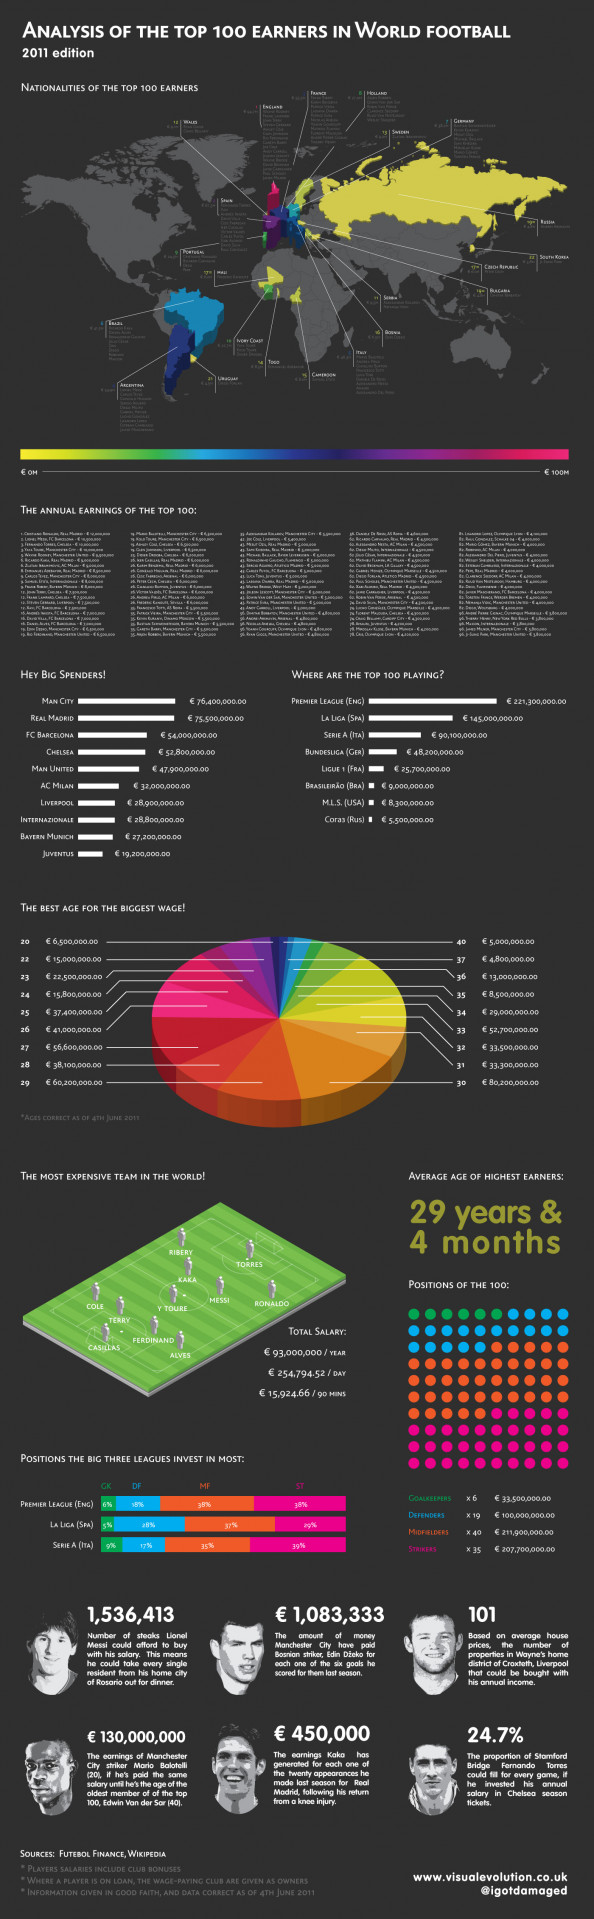 Analysis of the top 100 earners in World football – 2011 Infographic